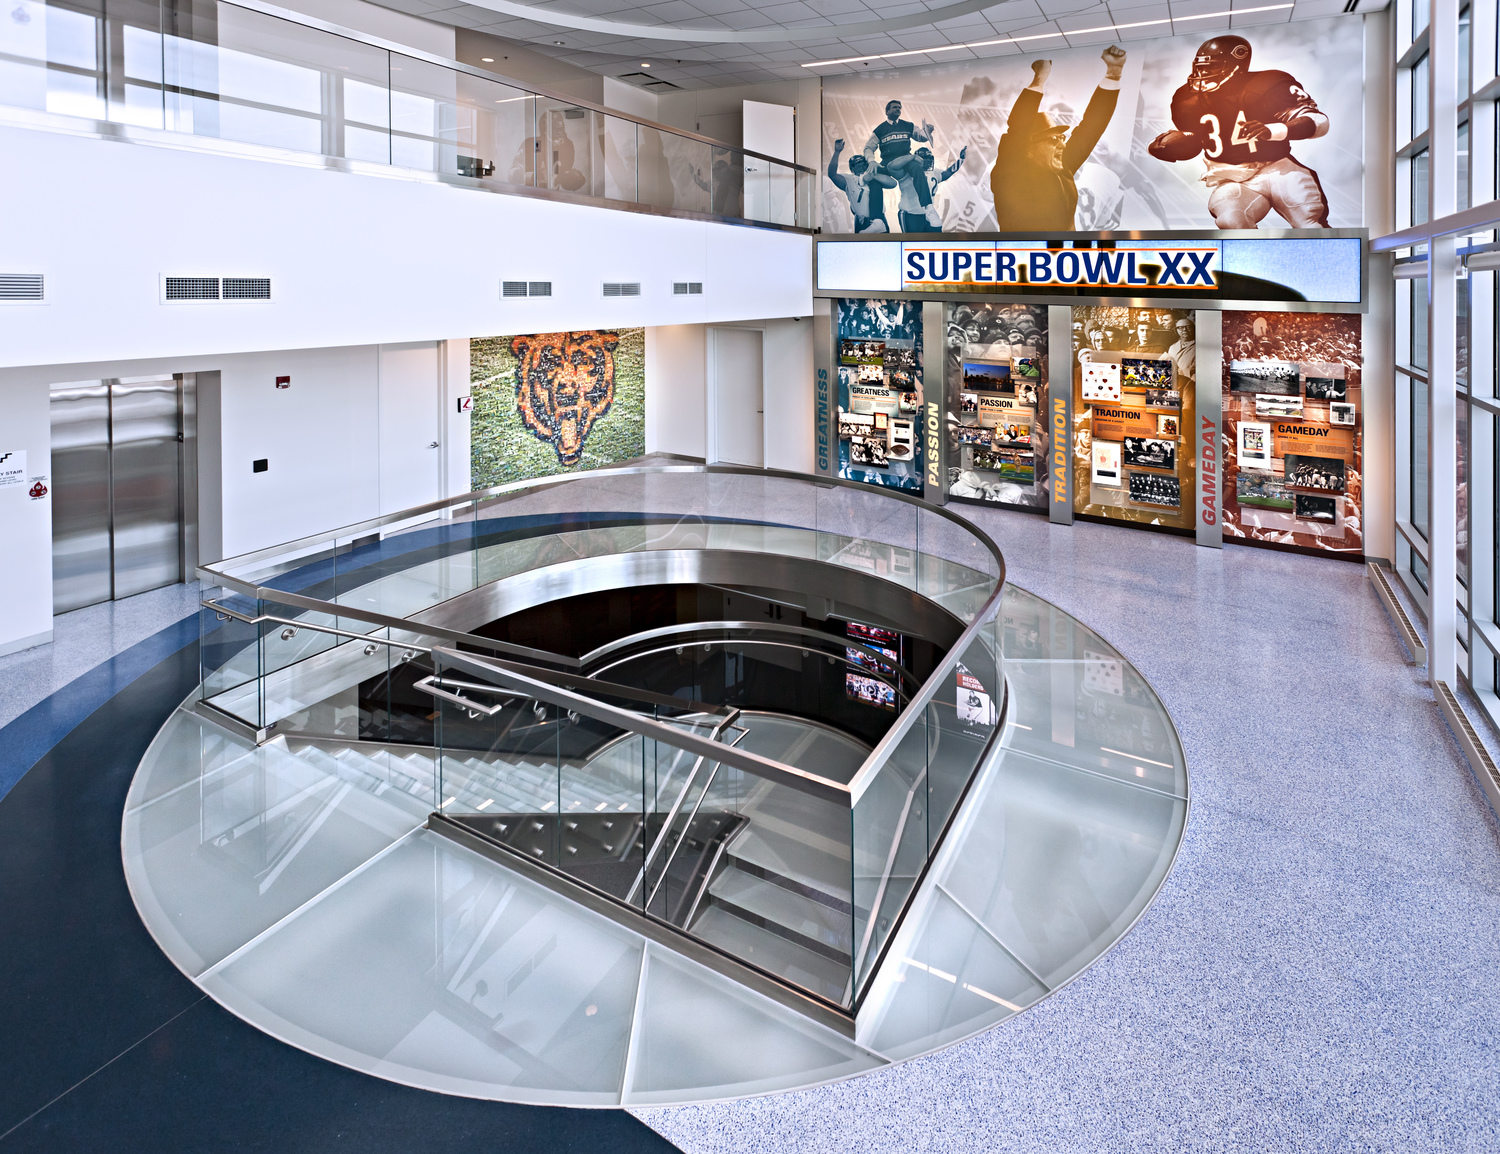 Stainless Steel and Glass Stair